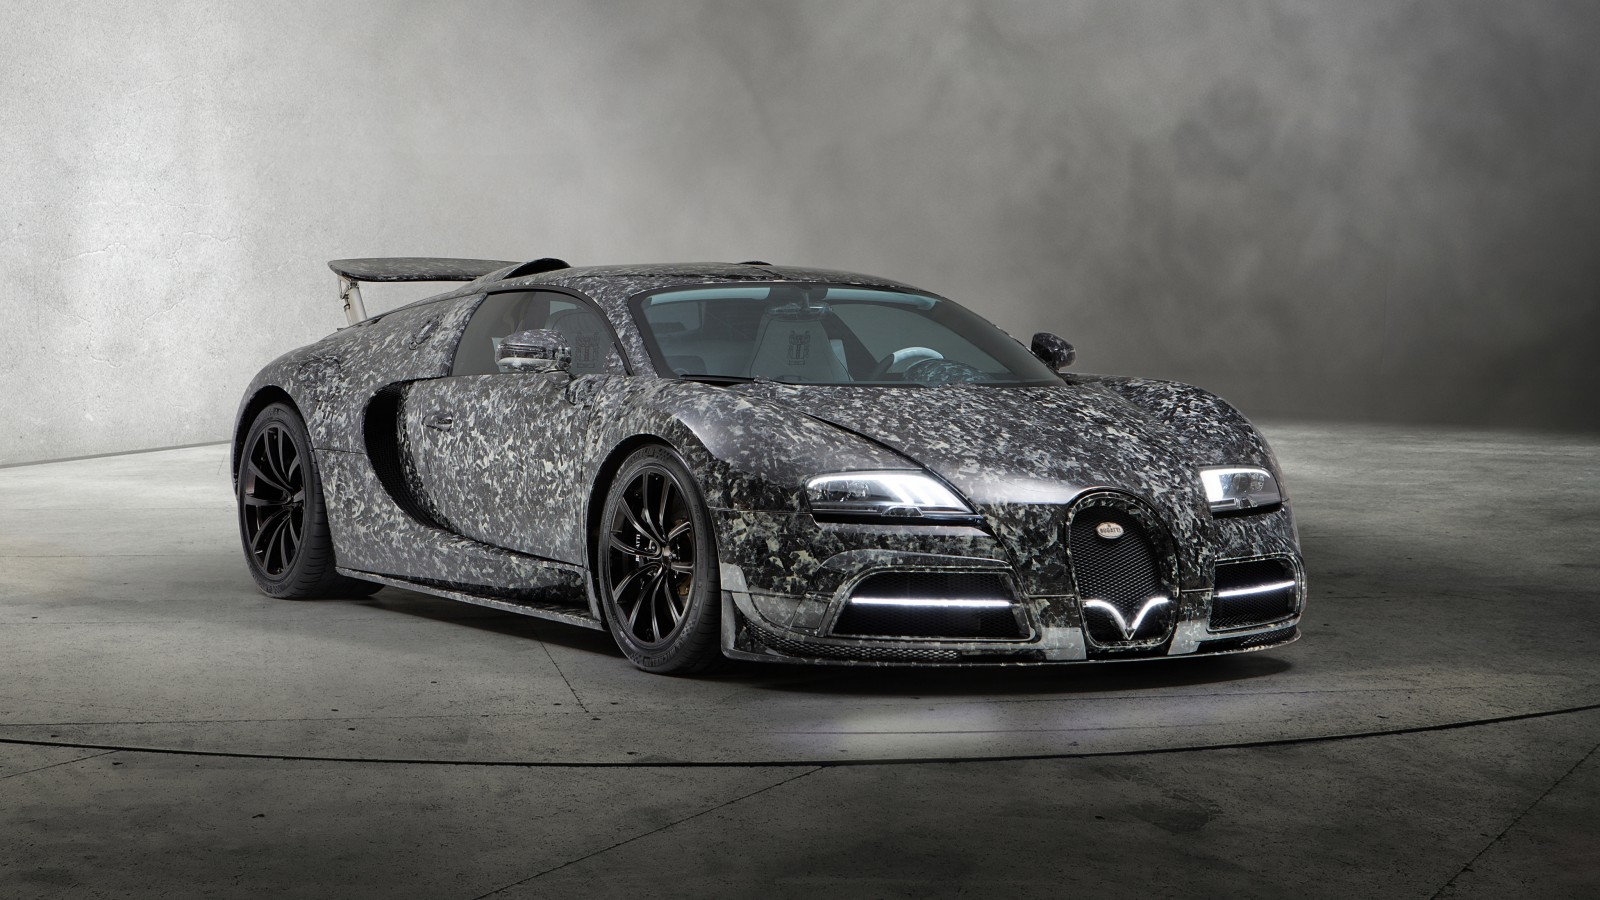 Download Car Wallpapers For Android 2018 Mansory Bugatti Veyron Vivere Diamond Edition 4k